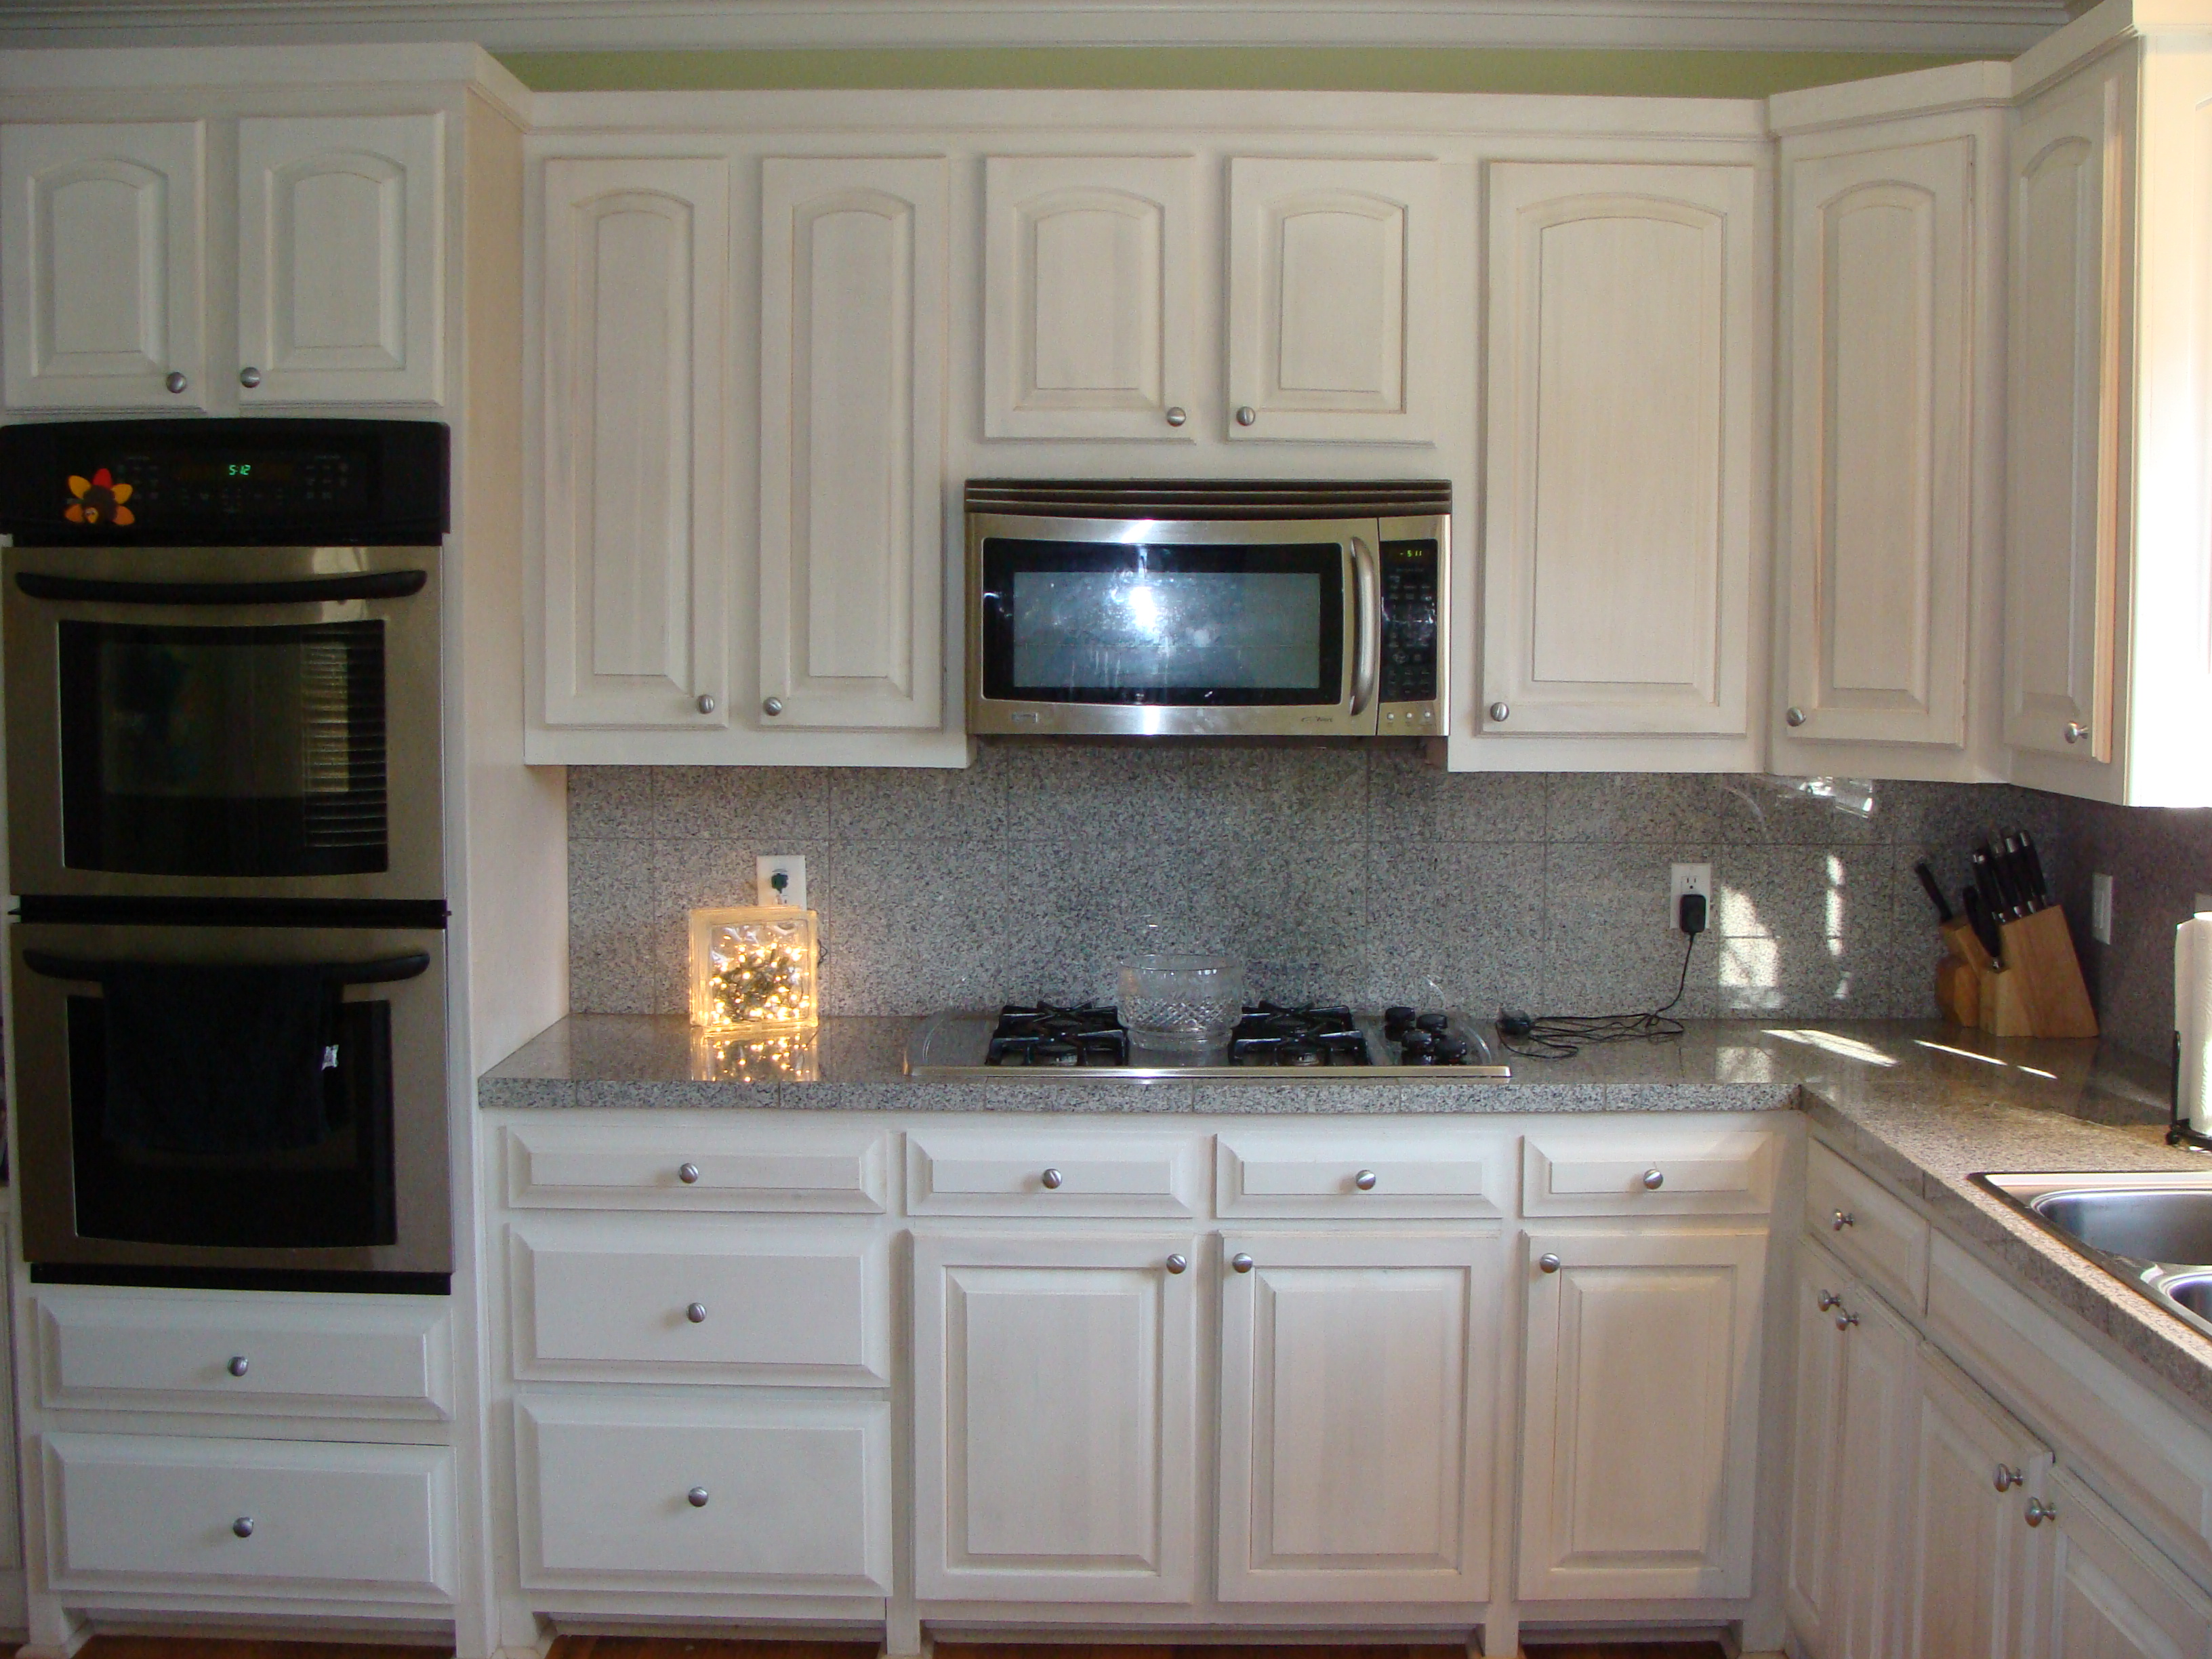 Fabulous Kitchens with White Cabinets 3264 x 2448 · 2107 kB · jpeg